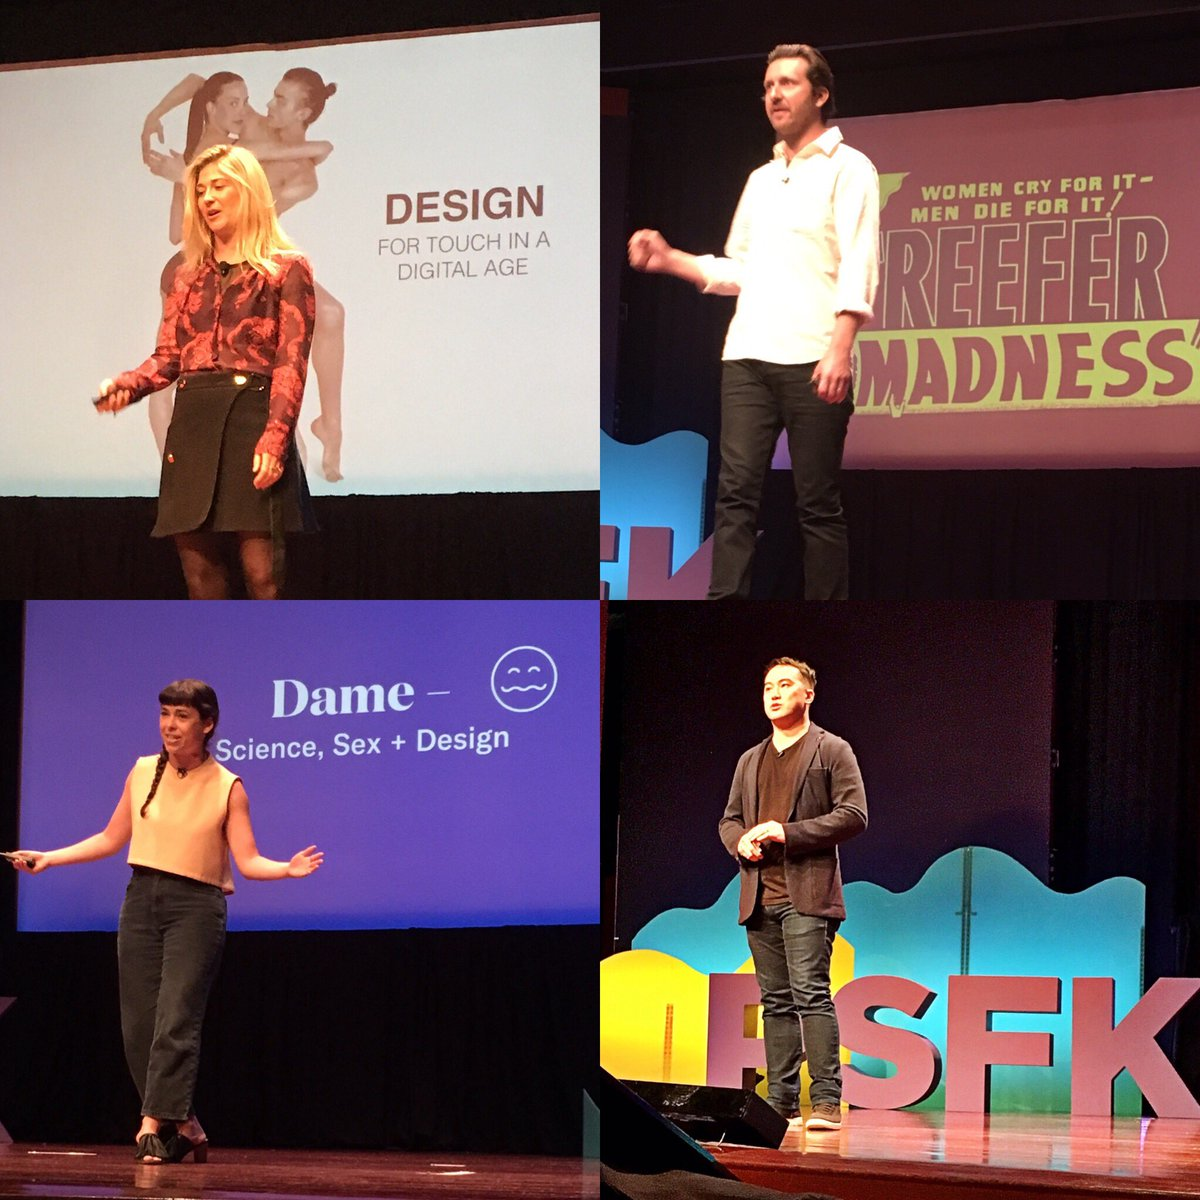 Stimulating sessions #PSFK2017 the future of Food, Sex, Drugs and Wearables! <br>http://pic.twitter.com/jGOygqupSj